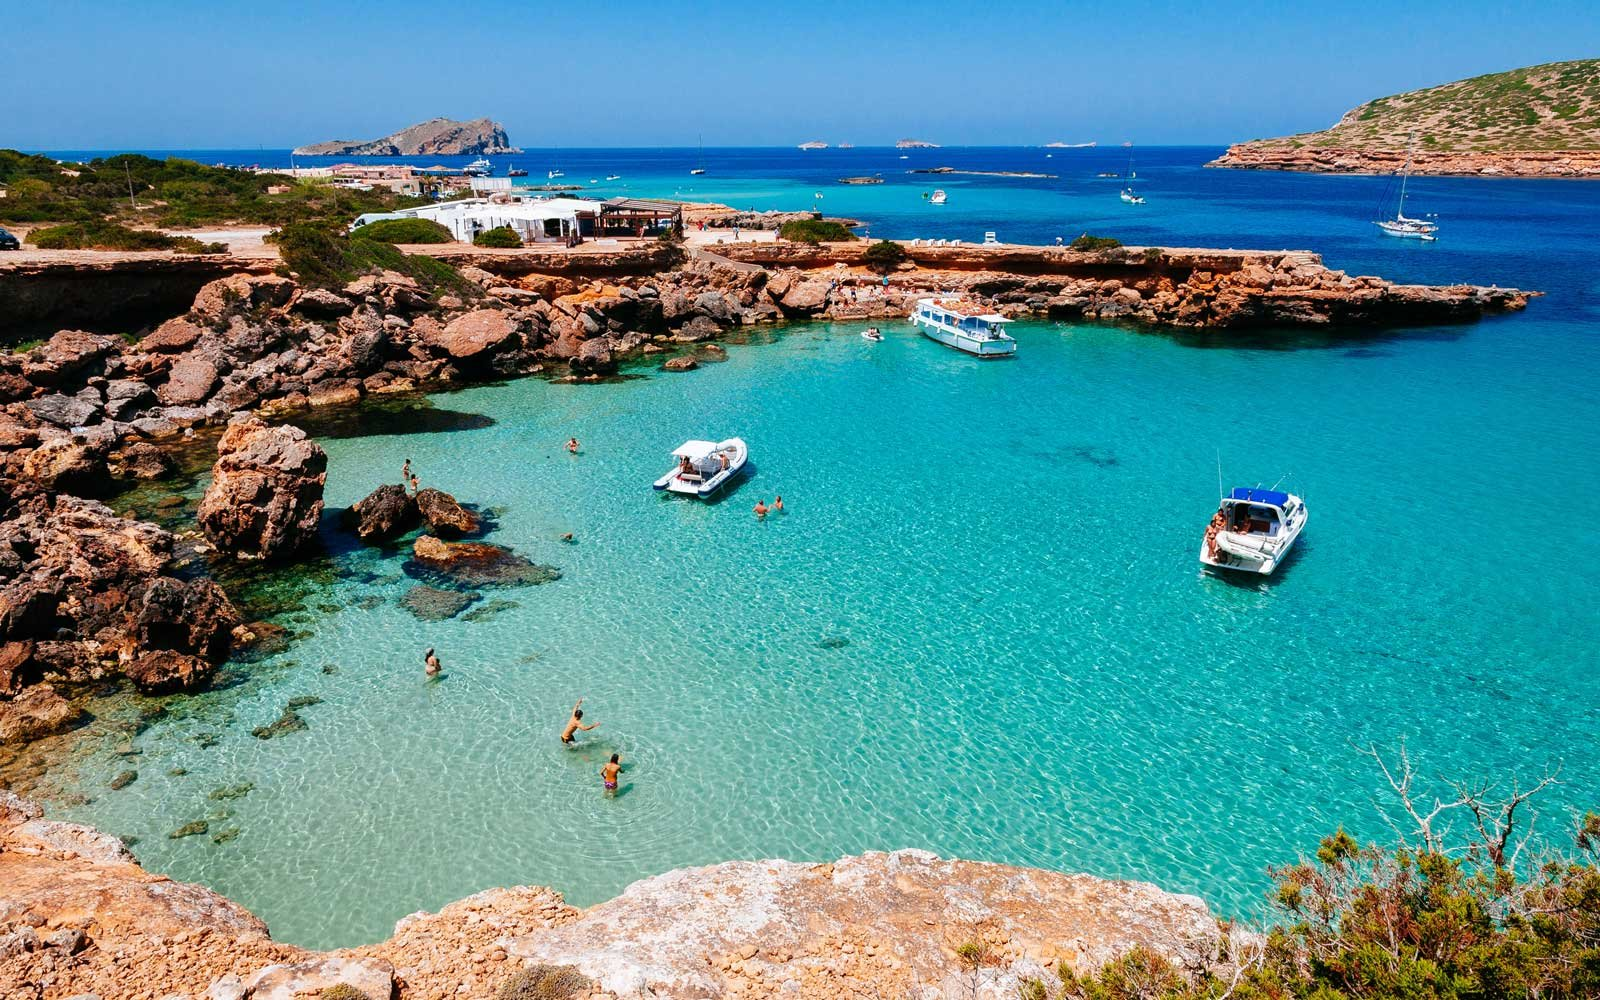 Cala Comte beach, Balearic Islands, Spain